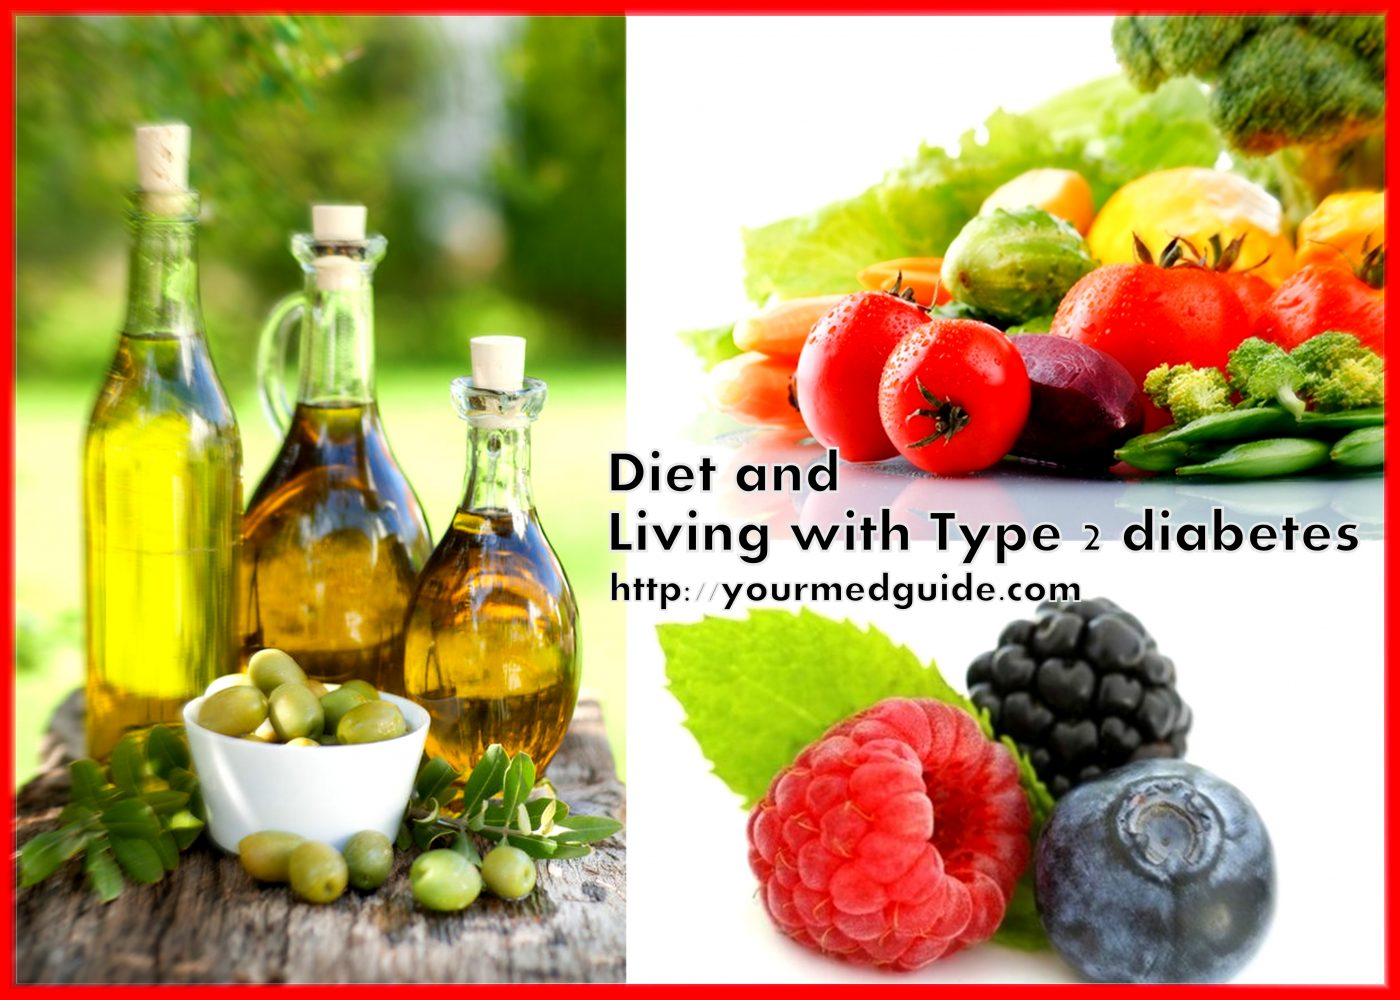 Diet-and-living-with-type-2-diabetes.jpg